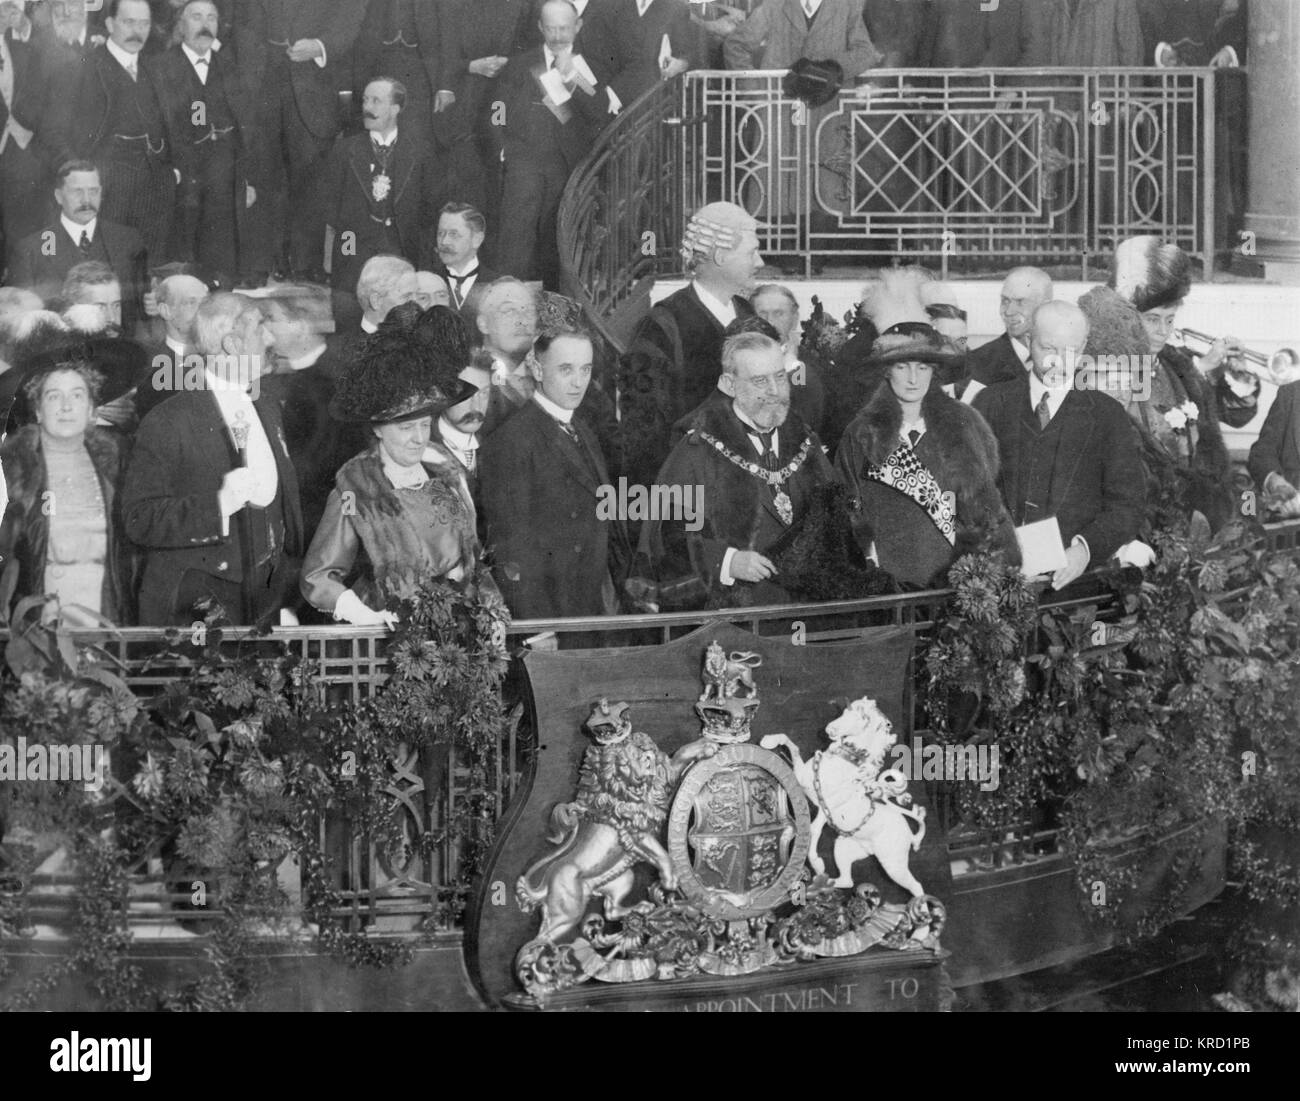 The Lord Mayor of London, Sir Thomas Boor Crosby (1830-1916), opening Whiteleys new premises in Bayswater, West - Stock Image